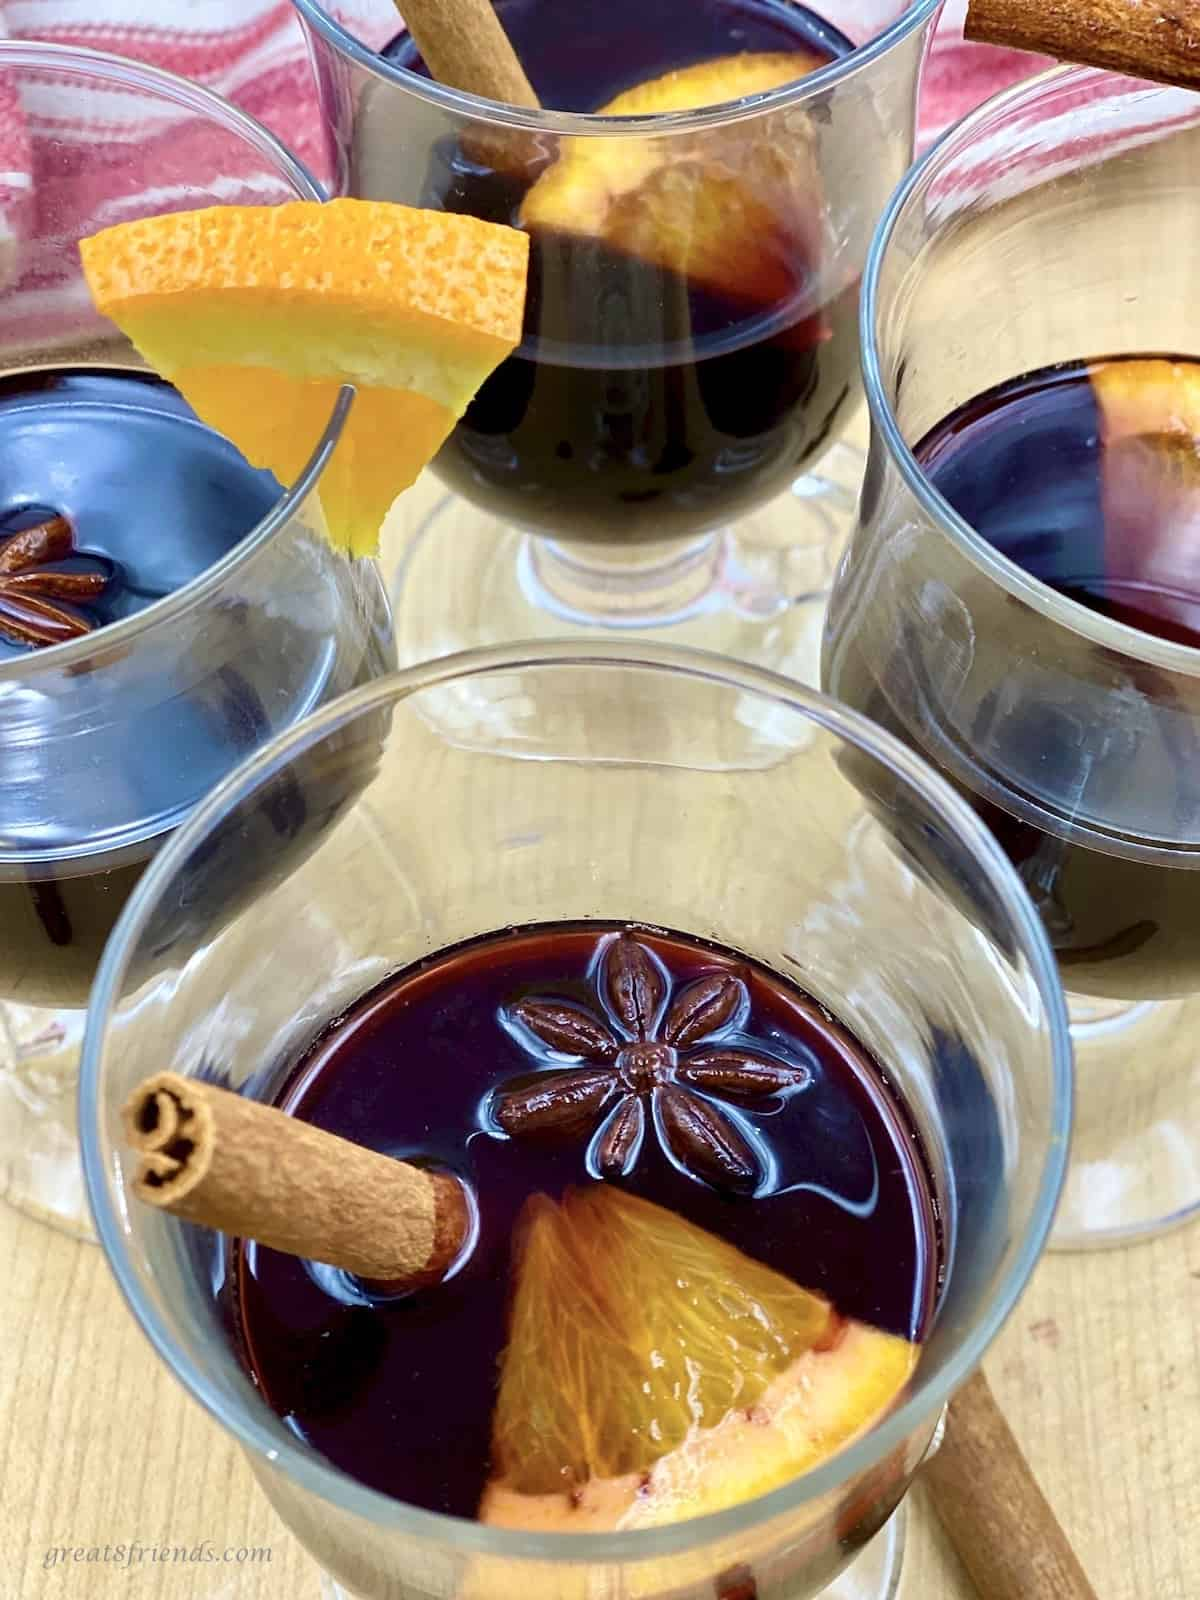 Four glass cups with mulled red wine garnished with cinnamon sticks and oranges slices.